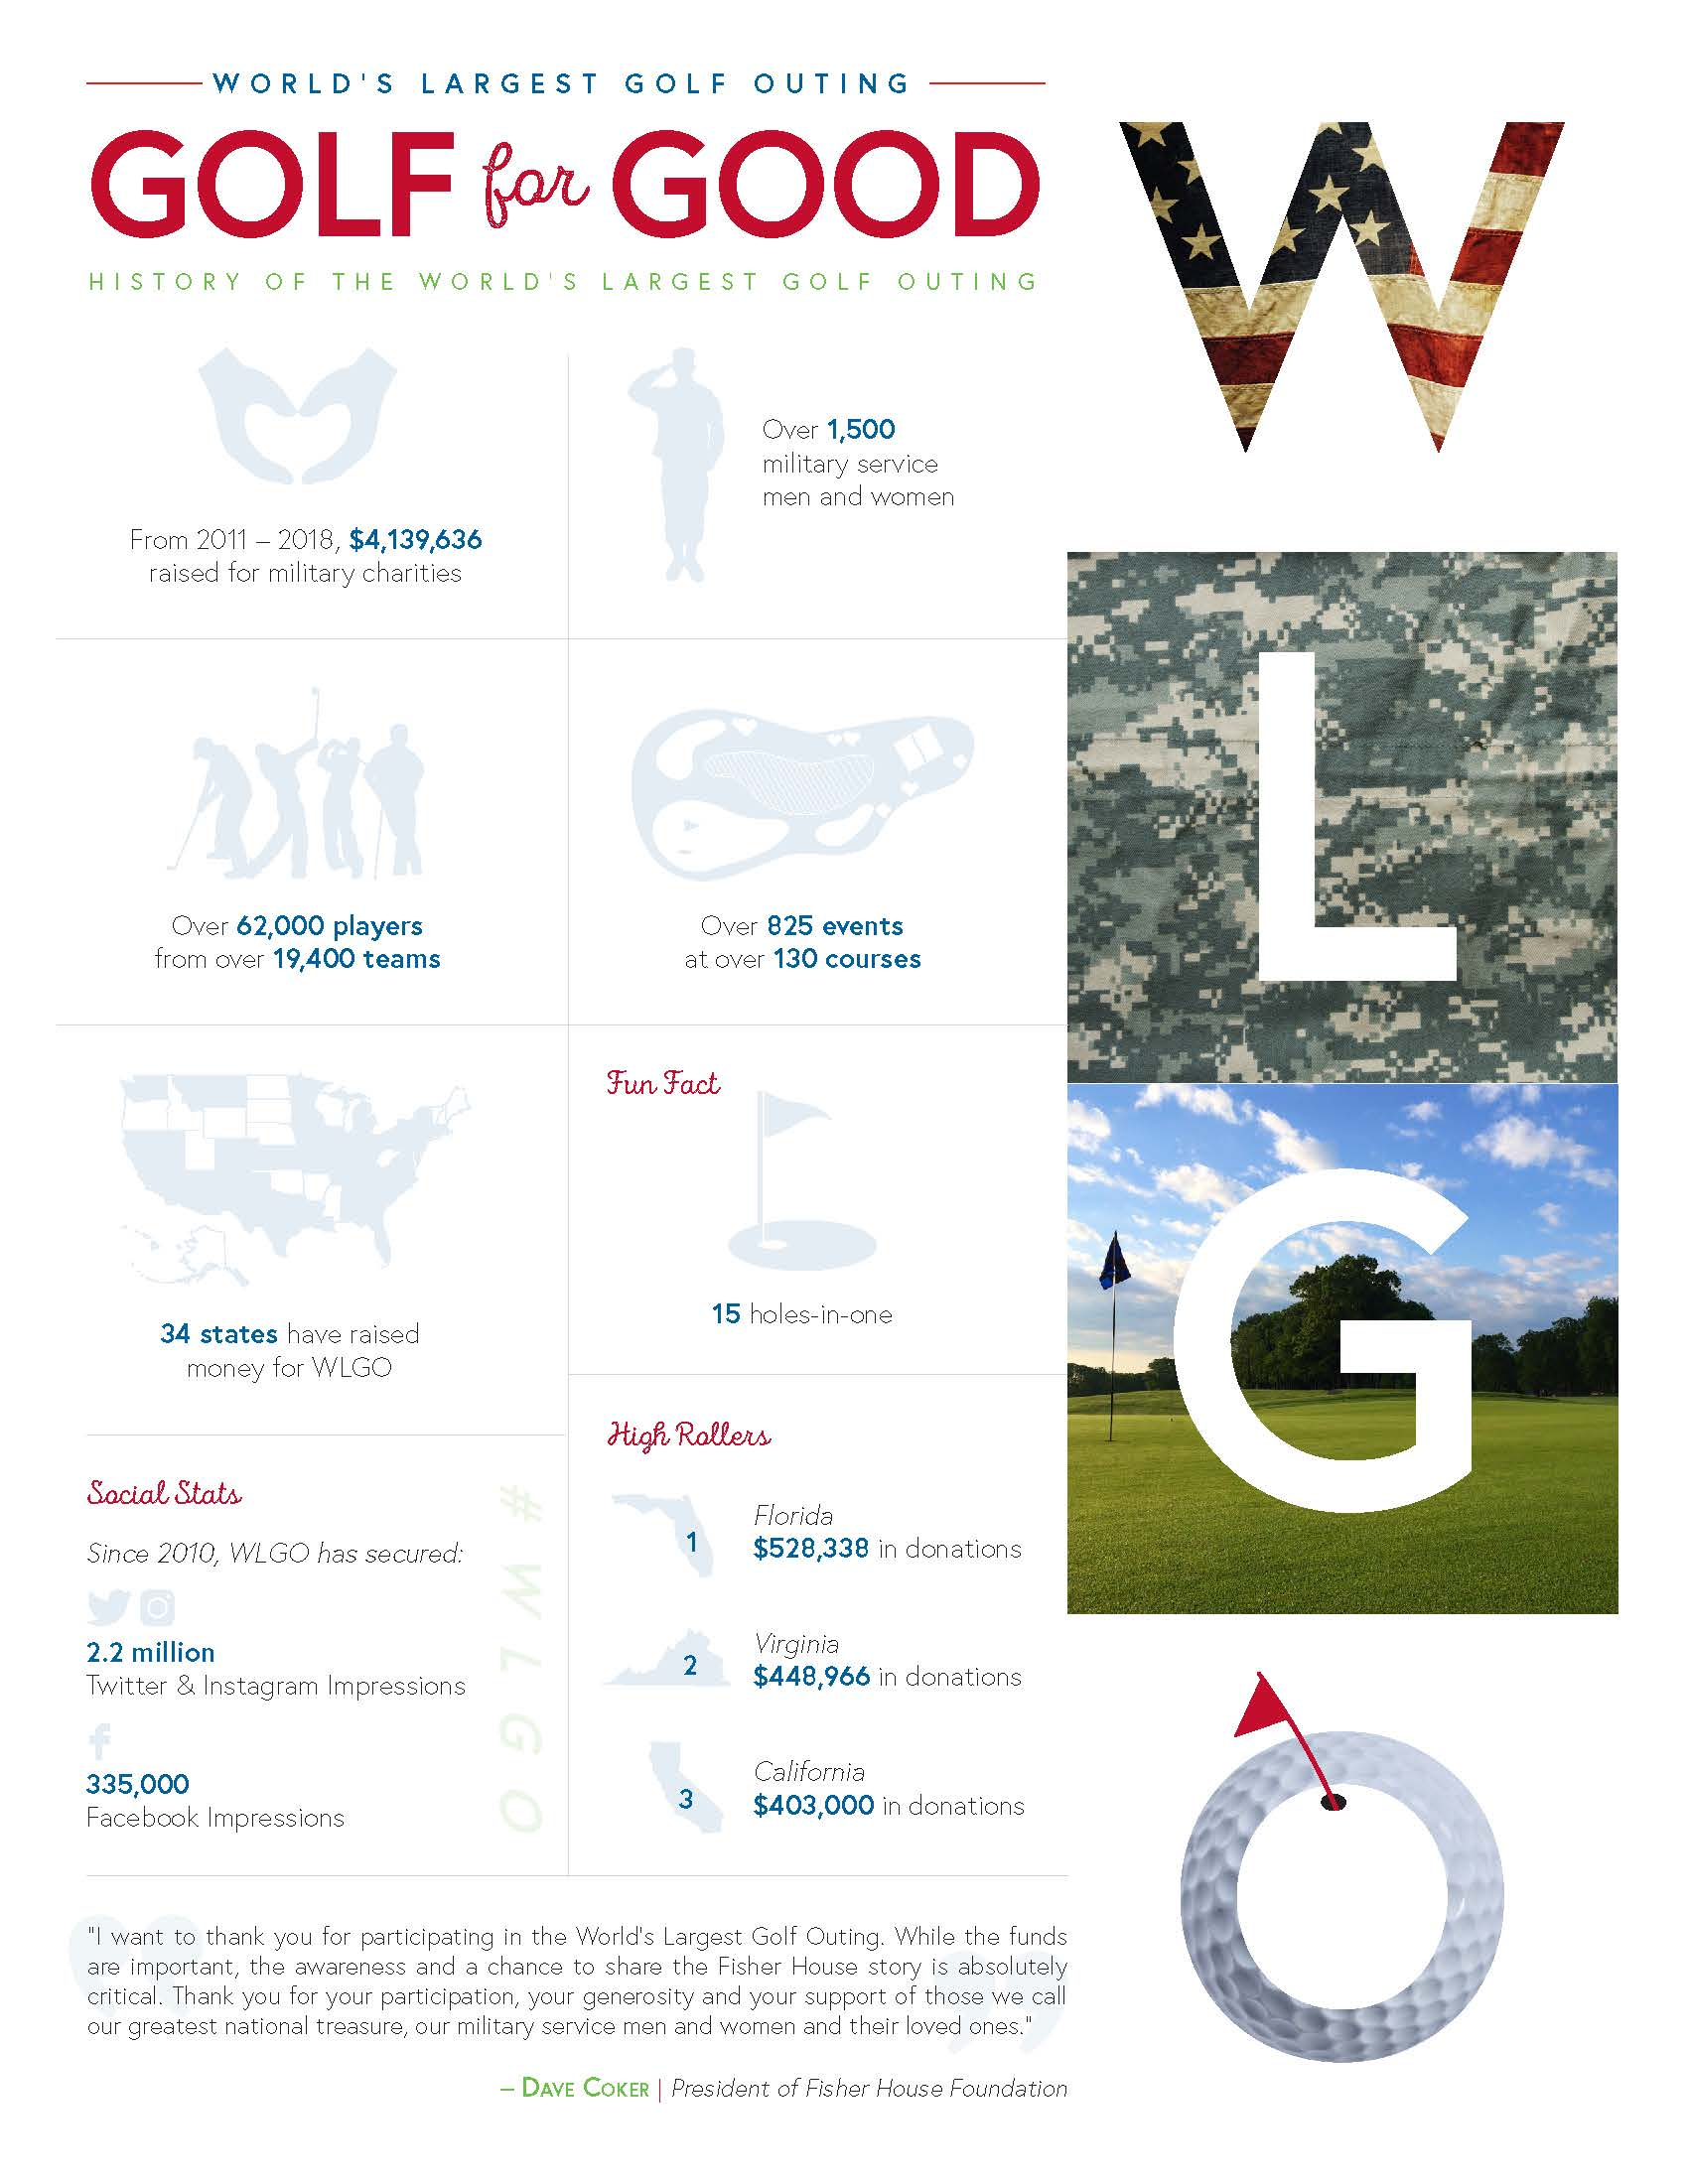 Infographic of the history of the World's Largest Golf Outing with facts and figures about the event.